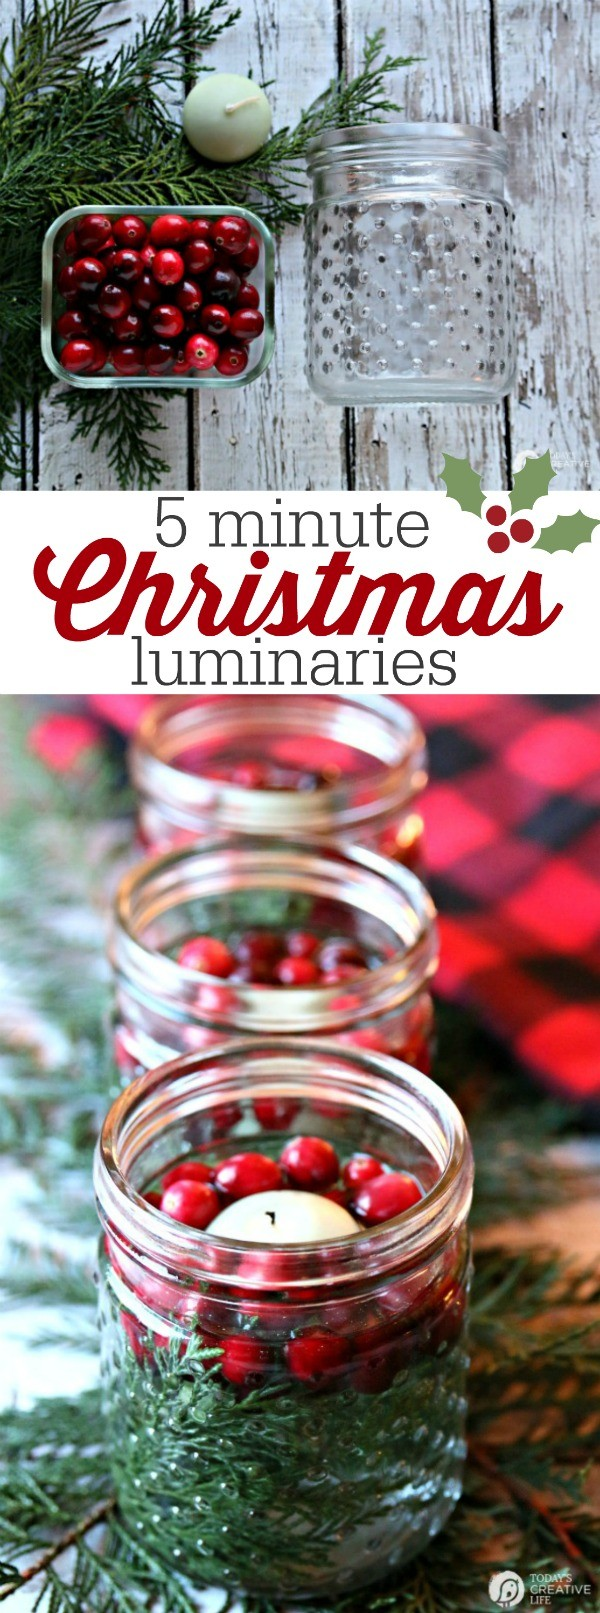 5 Minute Christmas Luminaries - easy to make and make your house smell good!